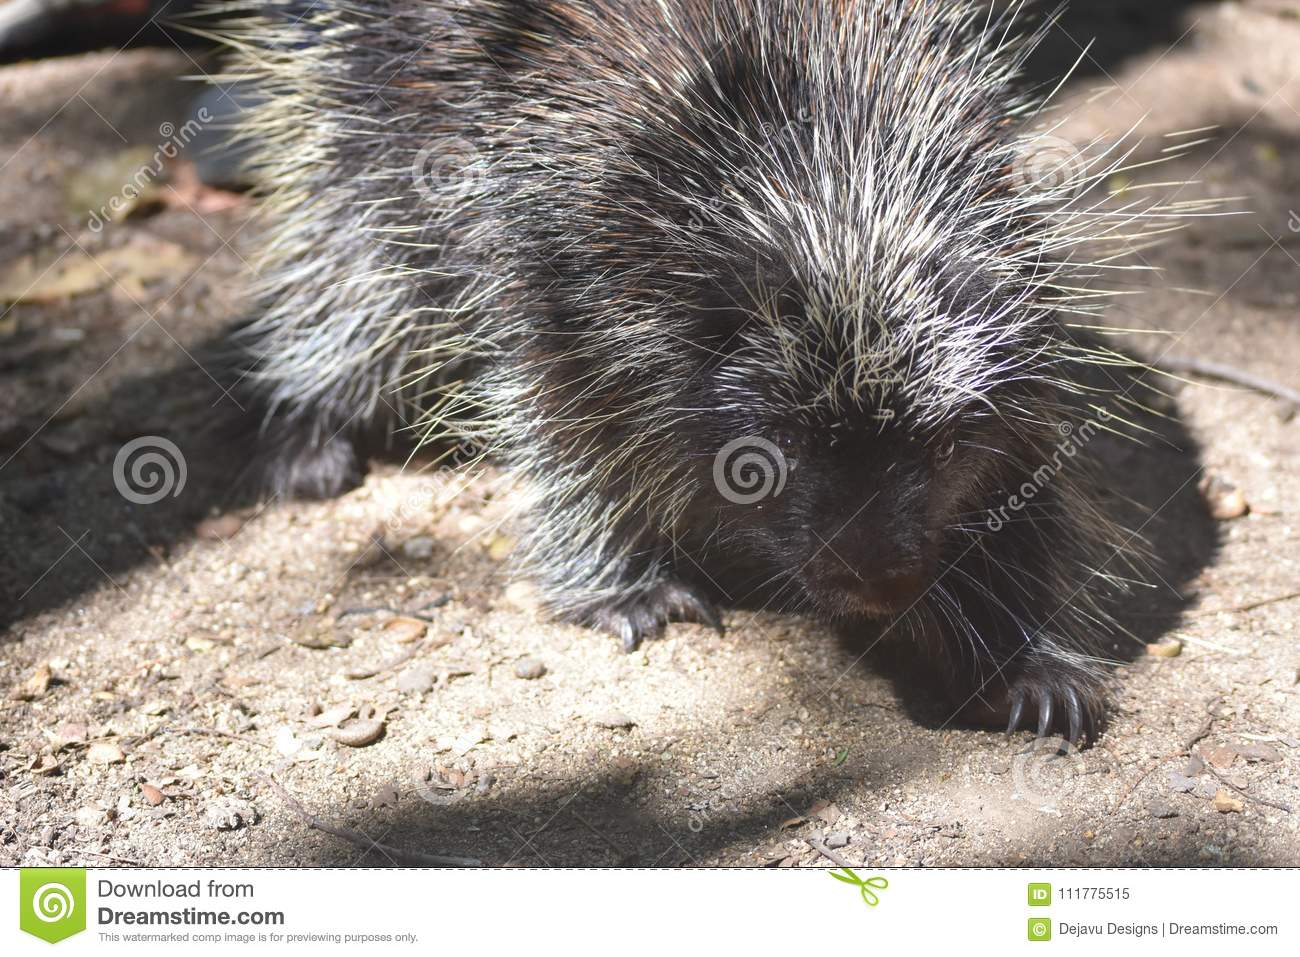 Black and white porcupine with large sharp claws